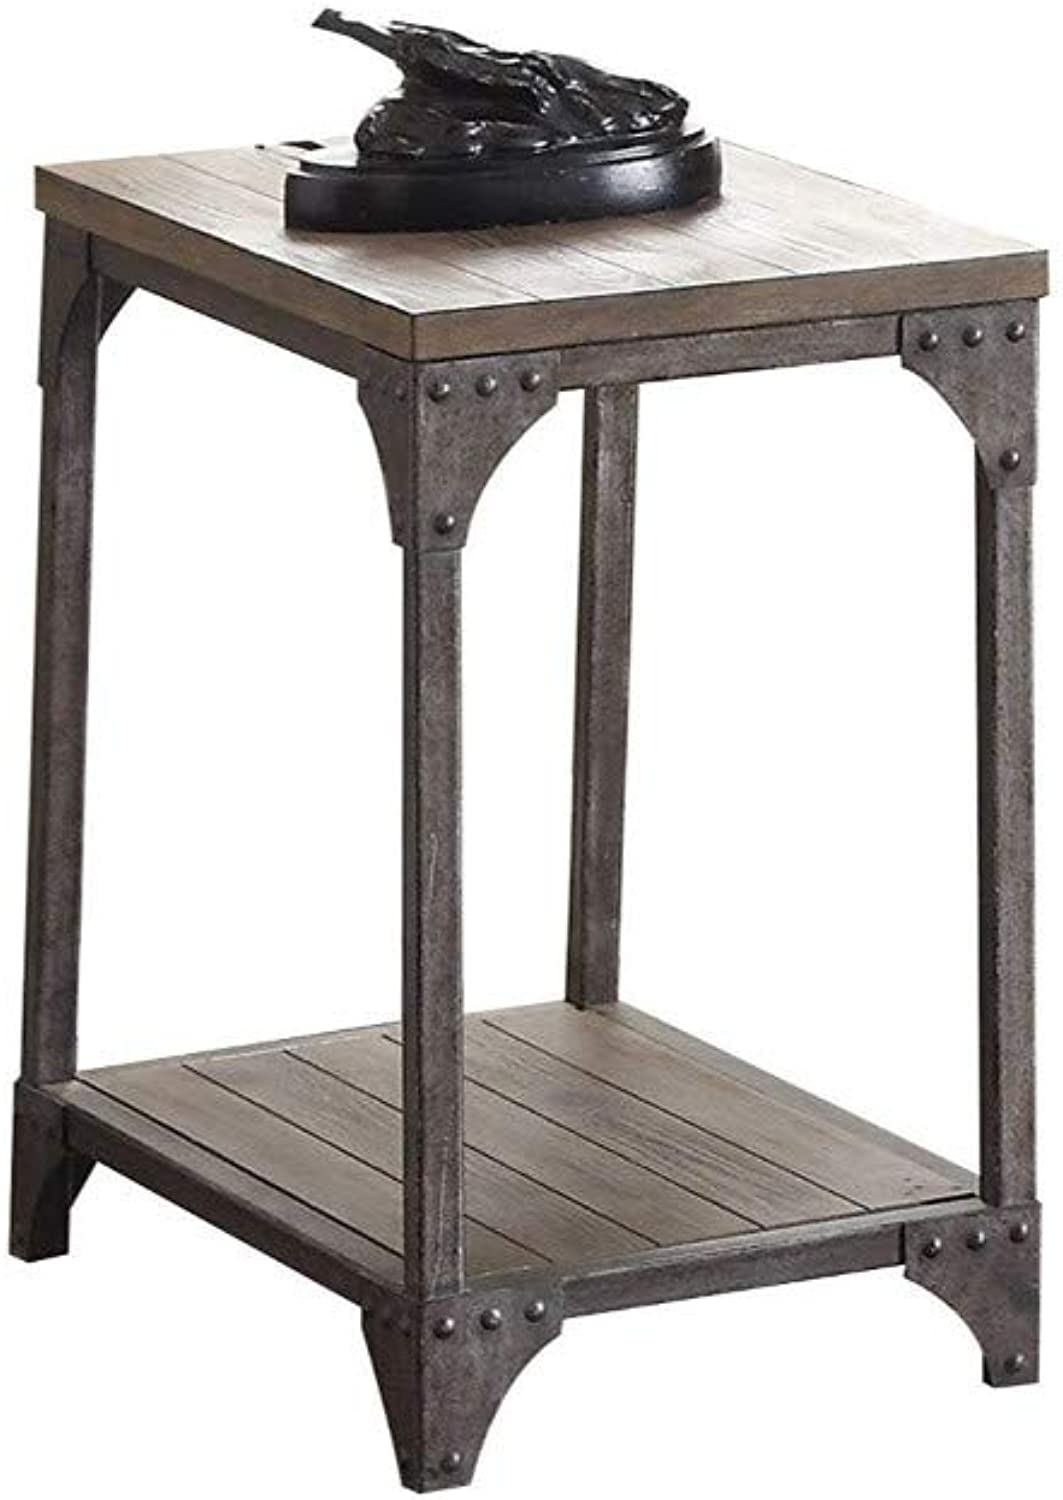 Benzara BM185772 Industrial Style End Table with Open Shelves, Brown